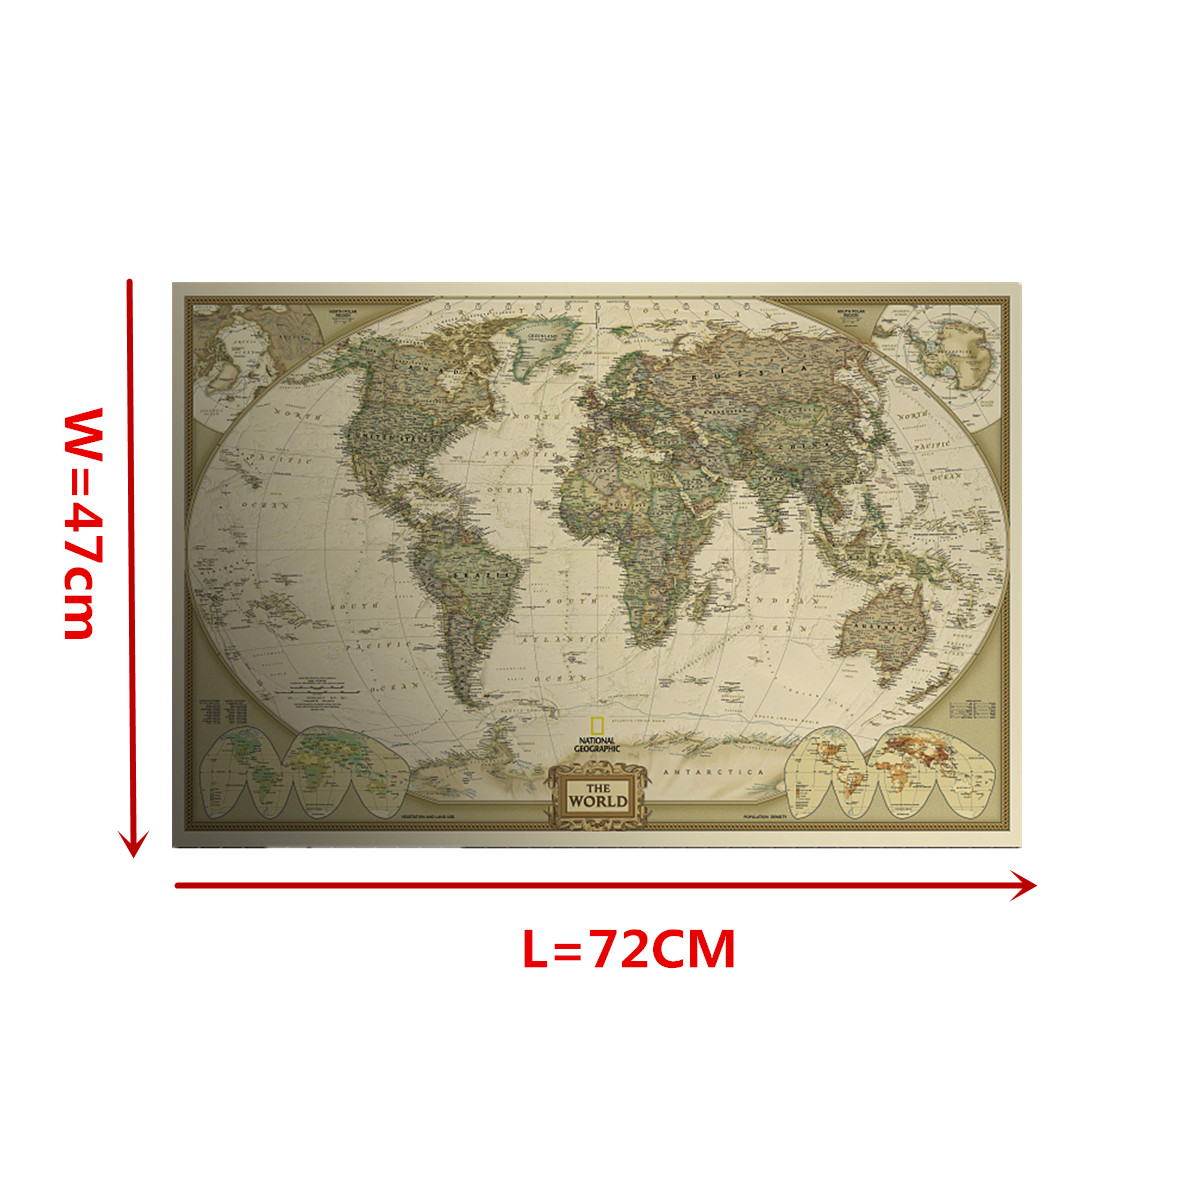 Antique vintage poster log the world map decor map giant of the antique vintage style retro poster log the world map decor giant source detail image gumiabroncs Gallery